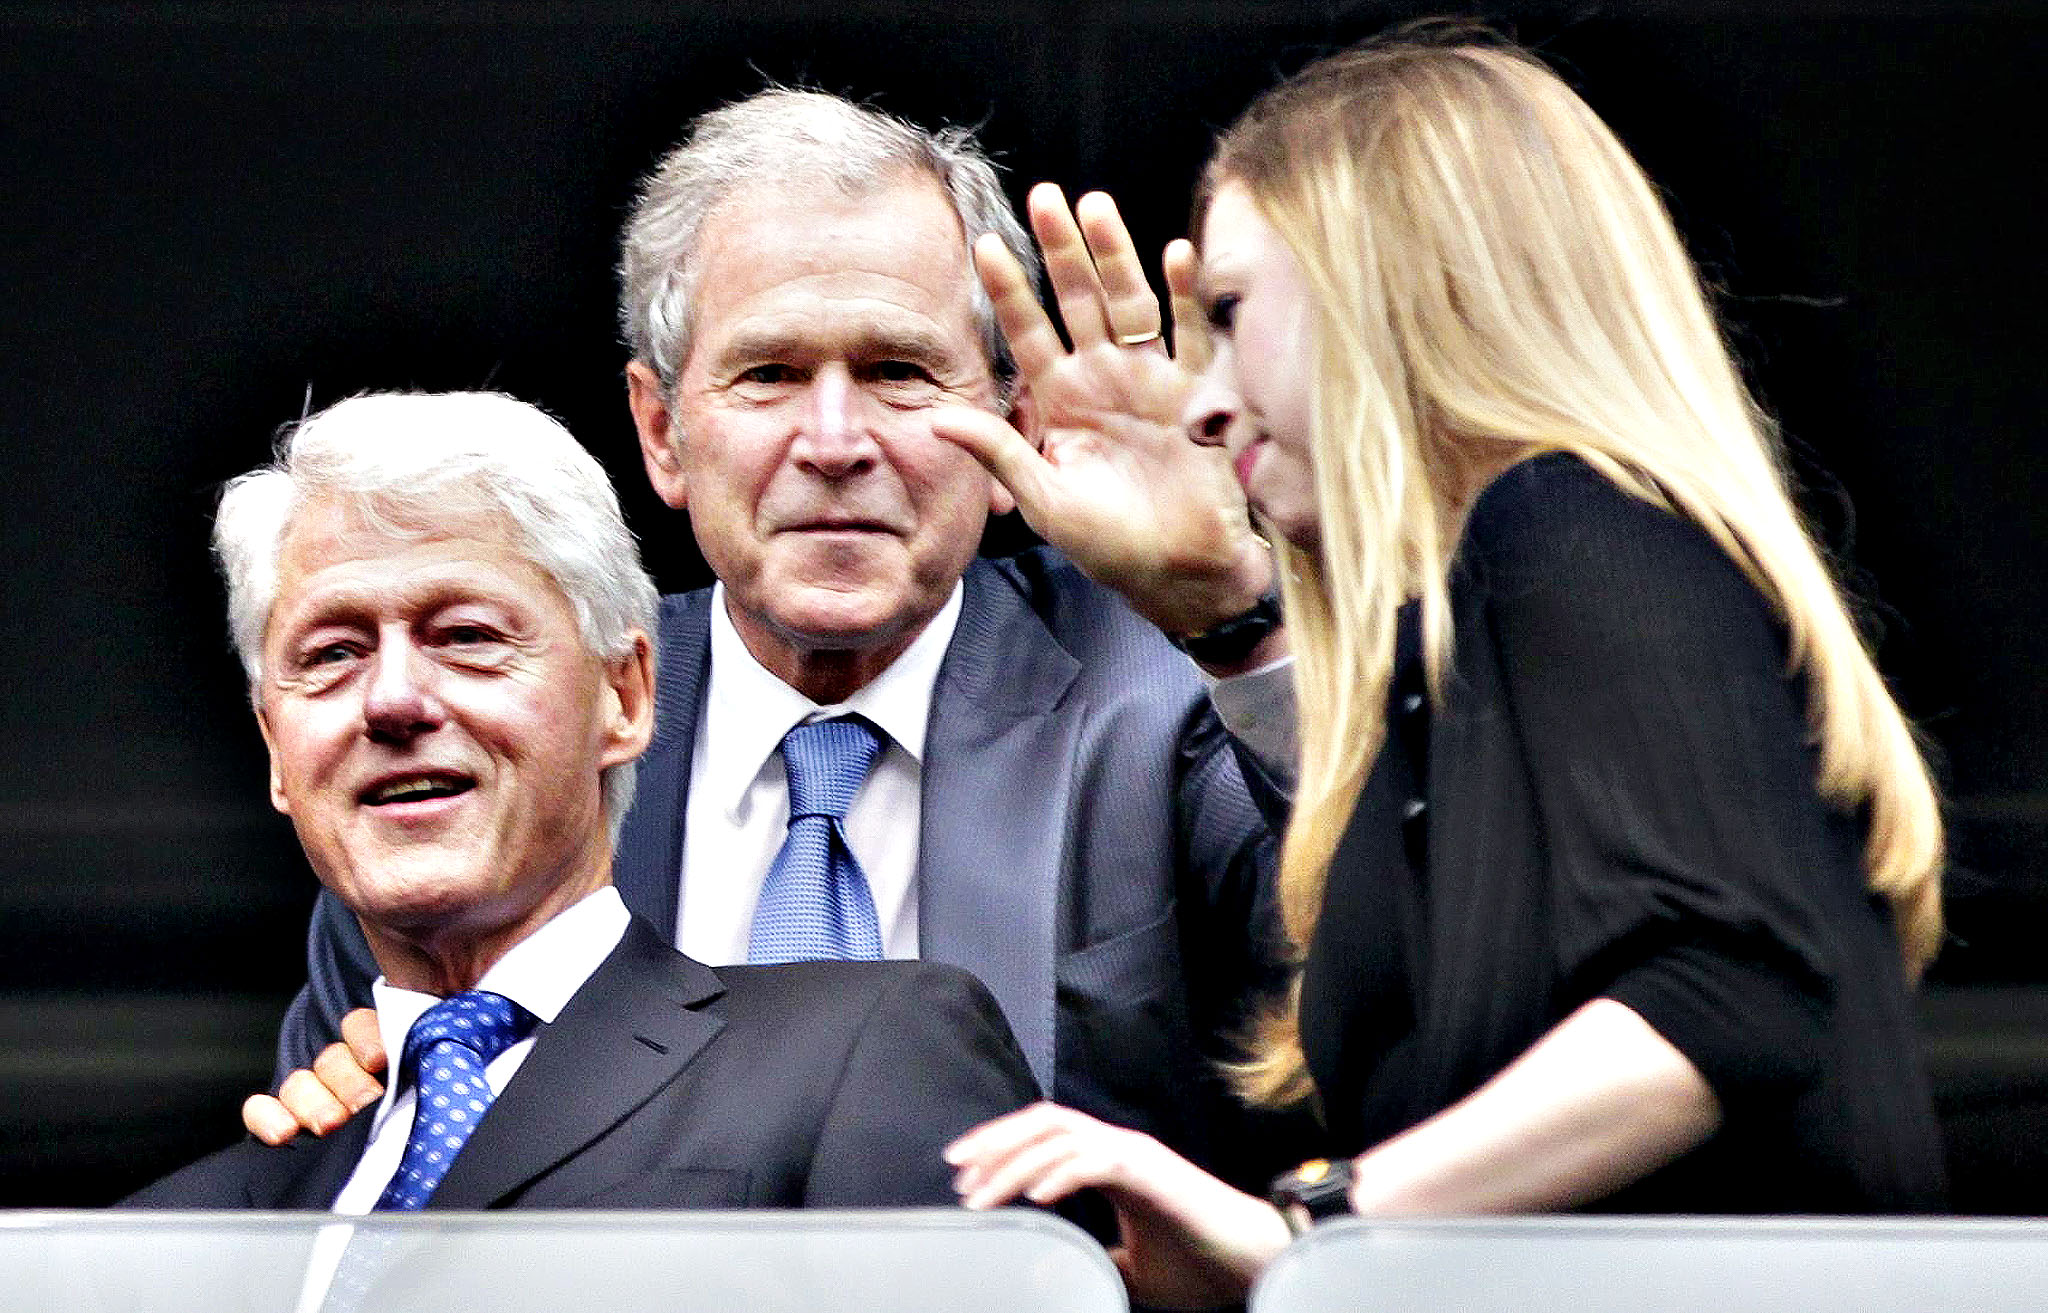 Former US presidents Bill Clinton (L), George W. Bush (C) and Clinton's daughter Chelsea Clinton (R) attend the official memorial ceremony for late South African president Nelson Mandela at FNB Stadium in Johannesburg, South Africa, 10 December 2013. Nobel Peace Prize winner Nelson Mandela died on 05 December at the age of 95.